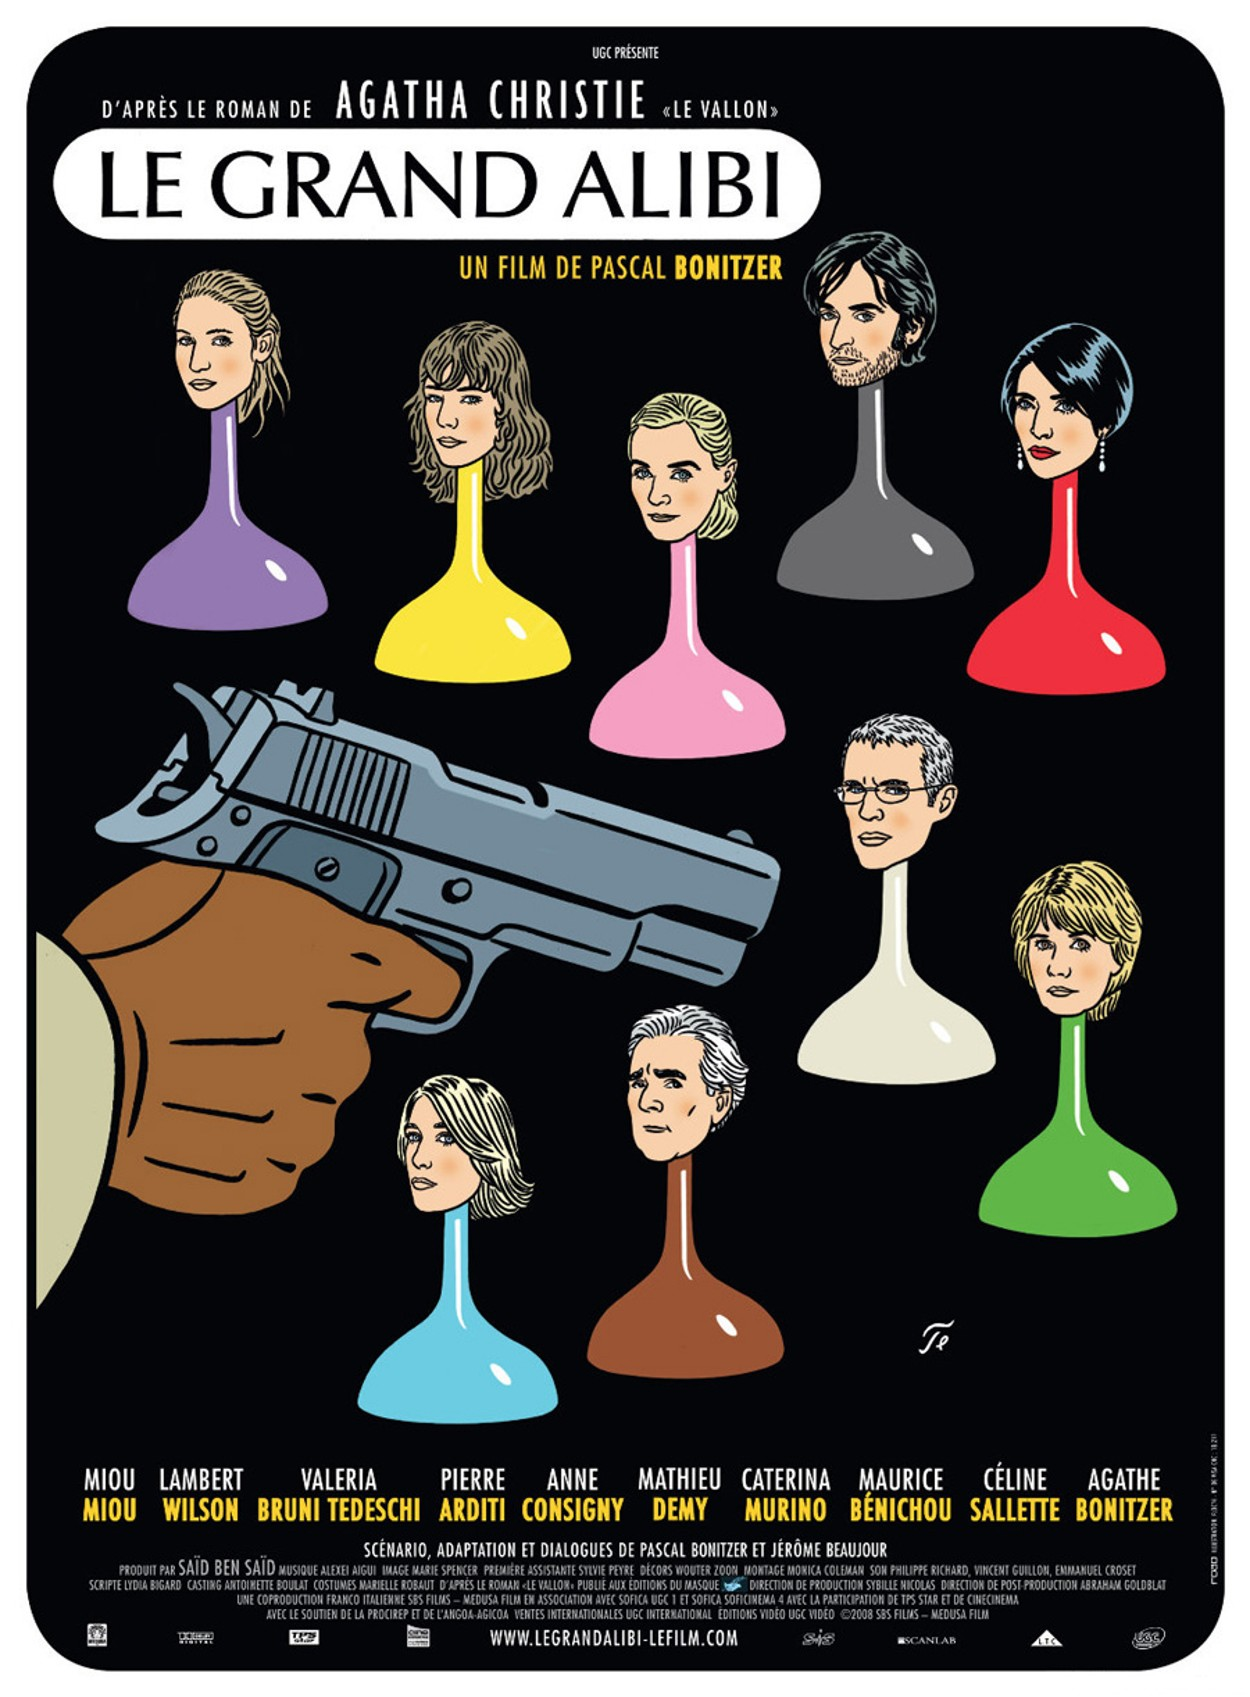 The Great Alibi (2008) Poster #1